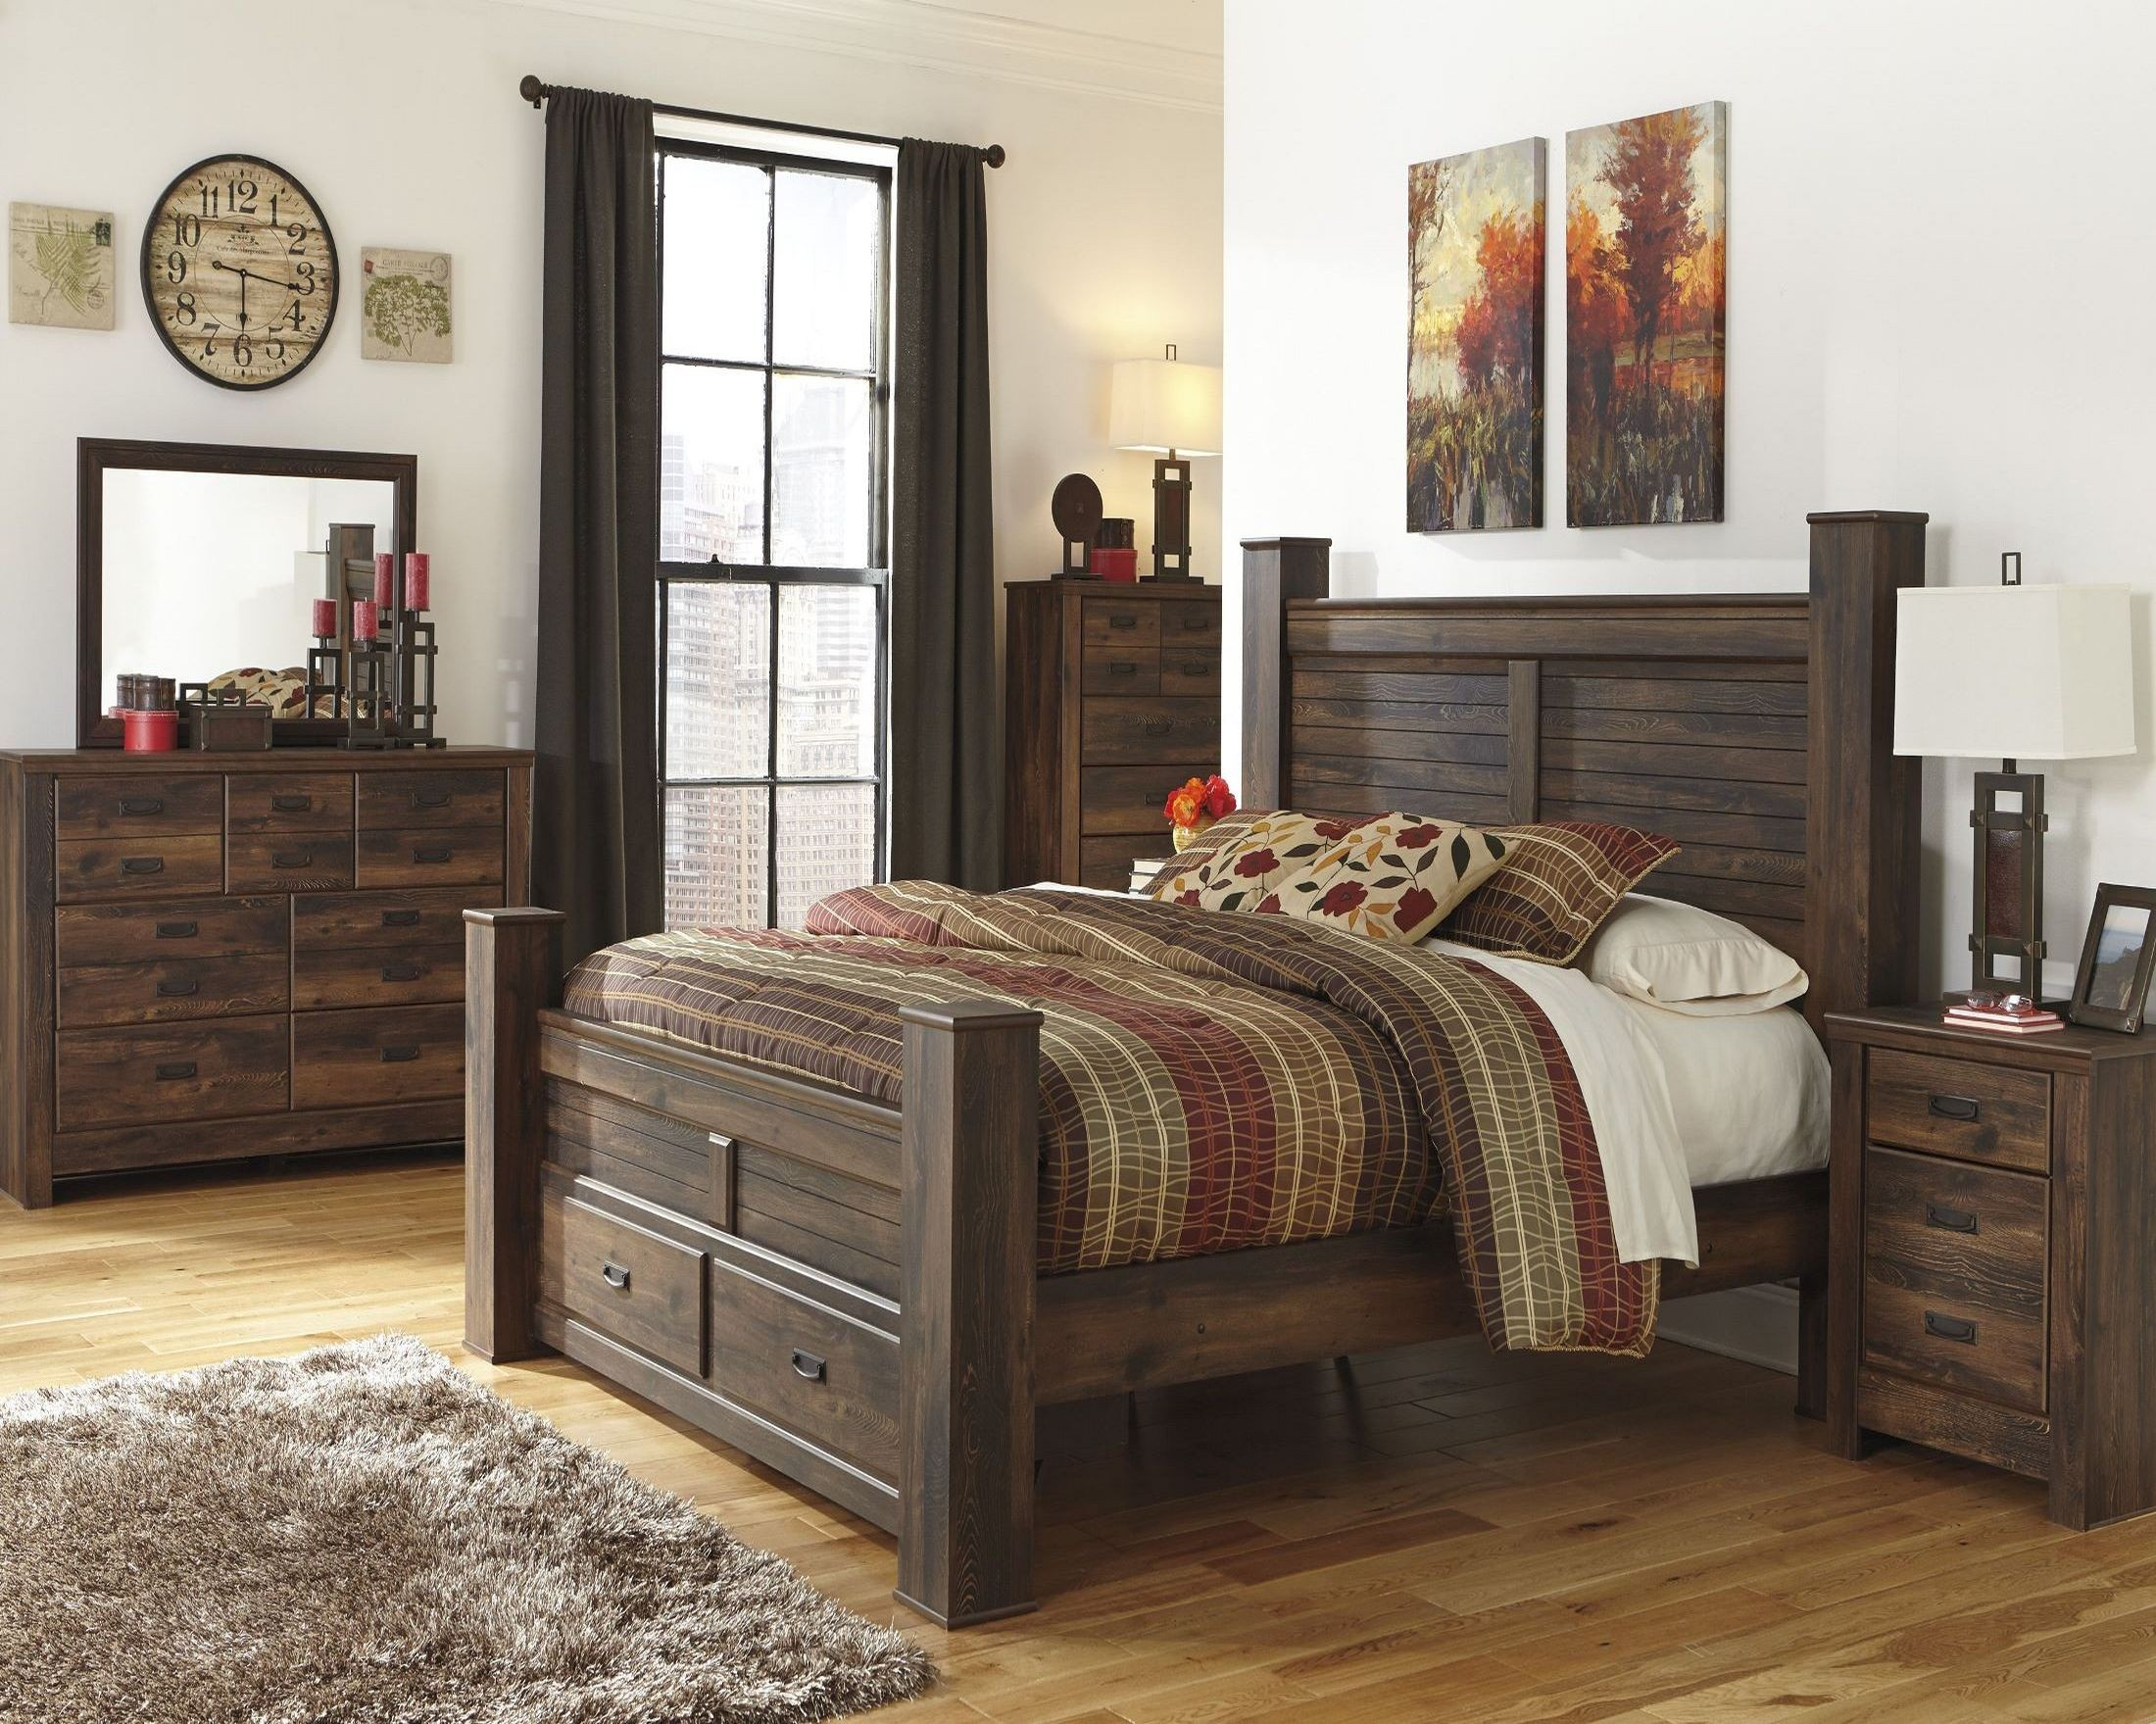 quinden poster storage bedroom set from ashley b246 61 64s 98 coleman furniture. Black Bedroom Furniture Sets. Home Design Ideas